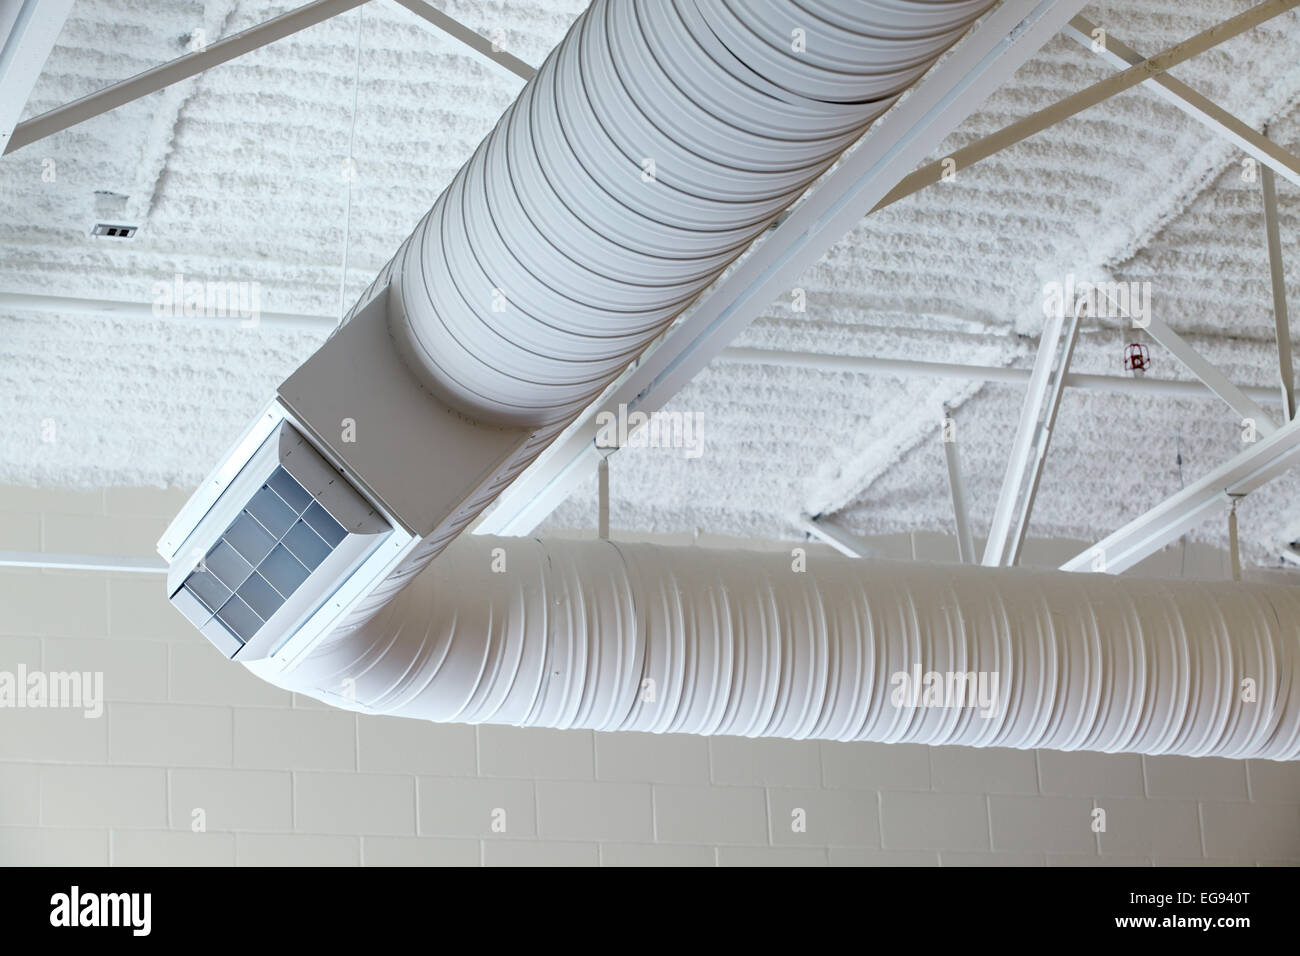 Duct Work In A Modern Commercial Hvac System Stock Photo